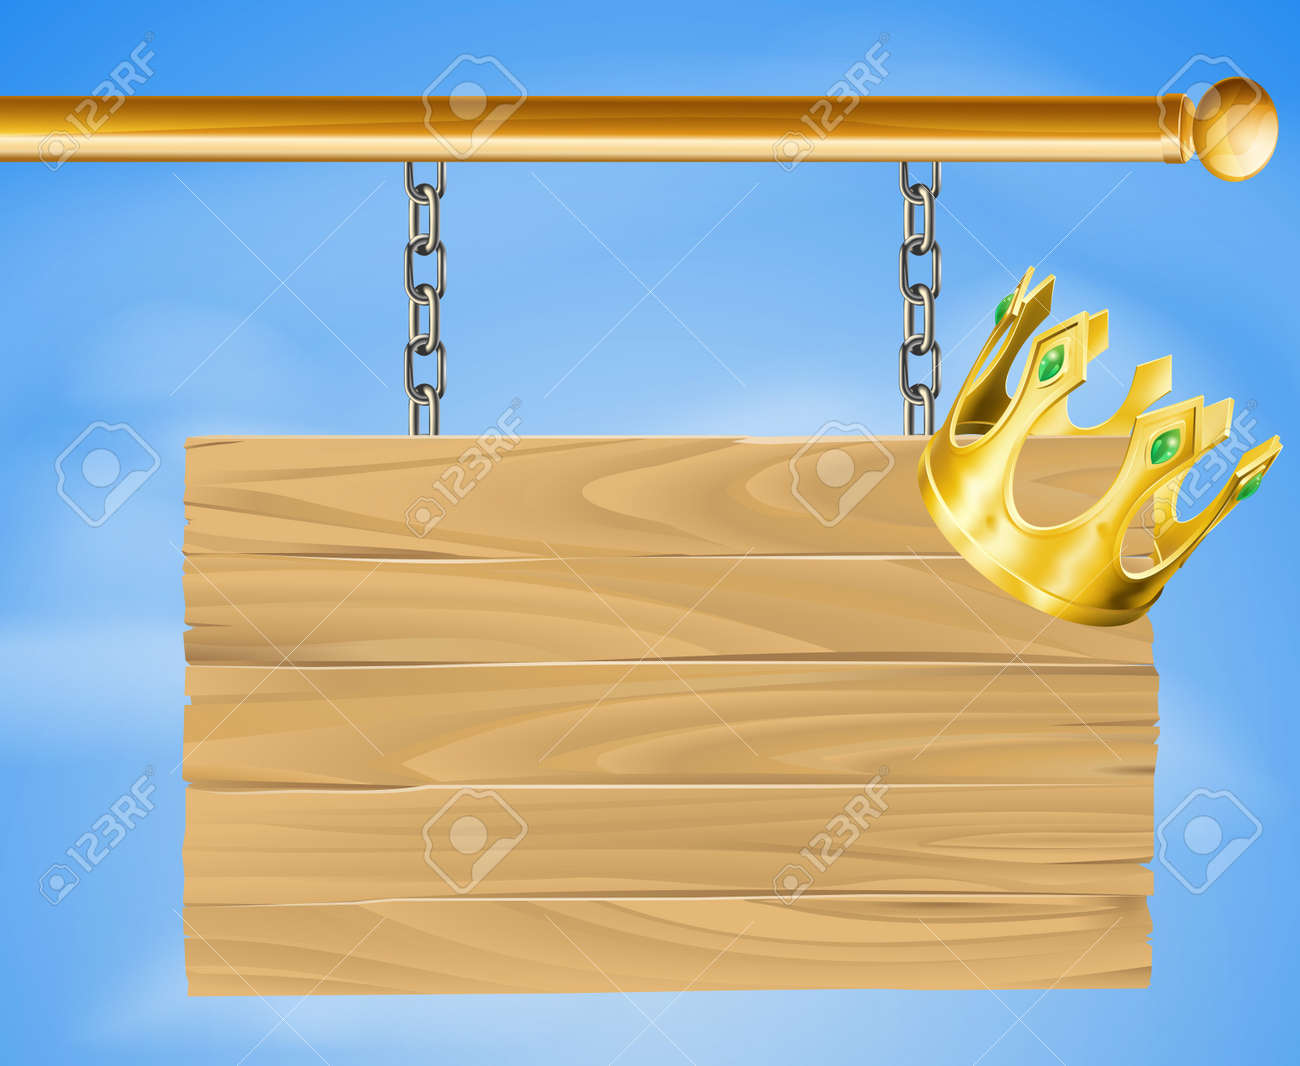 Illustration of a wooden hanging sign with a gold crown on it Stock Vector - 14719972